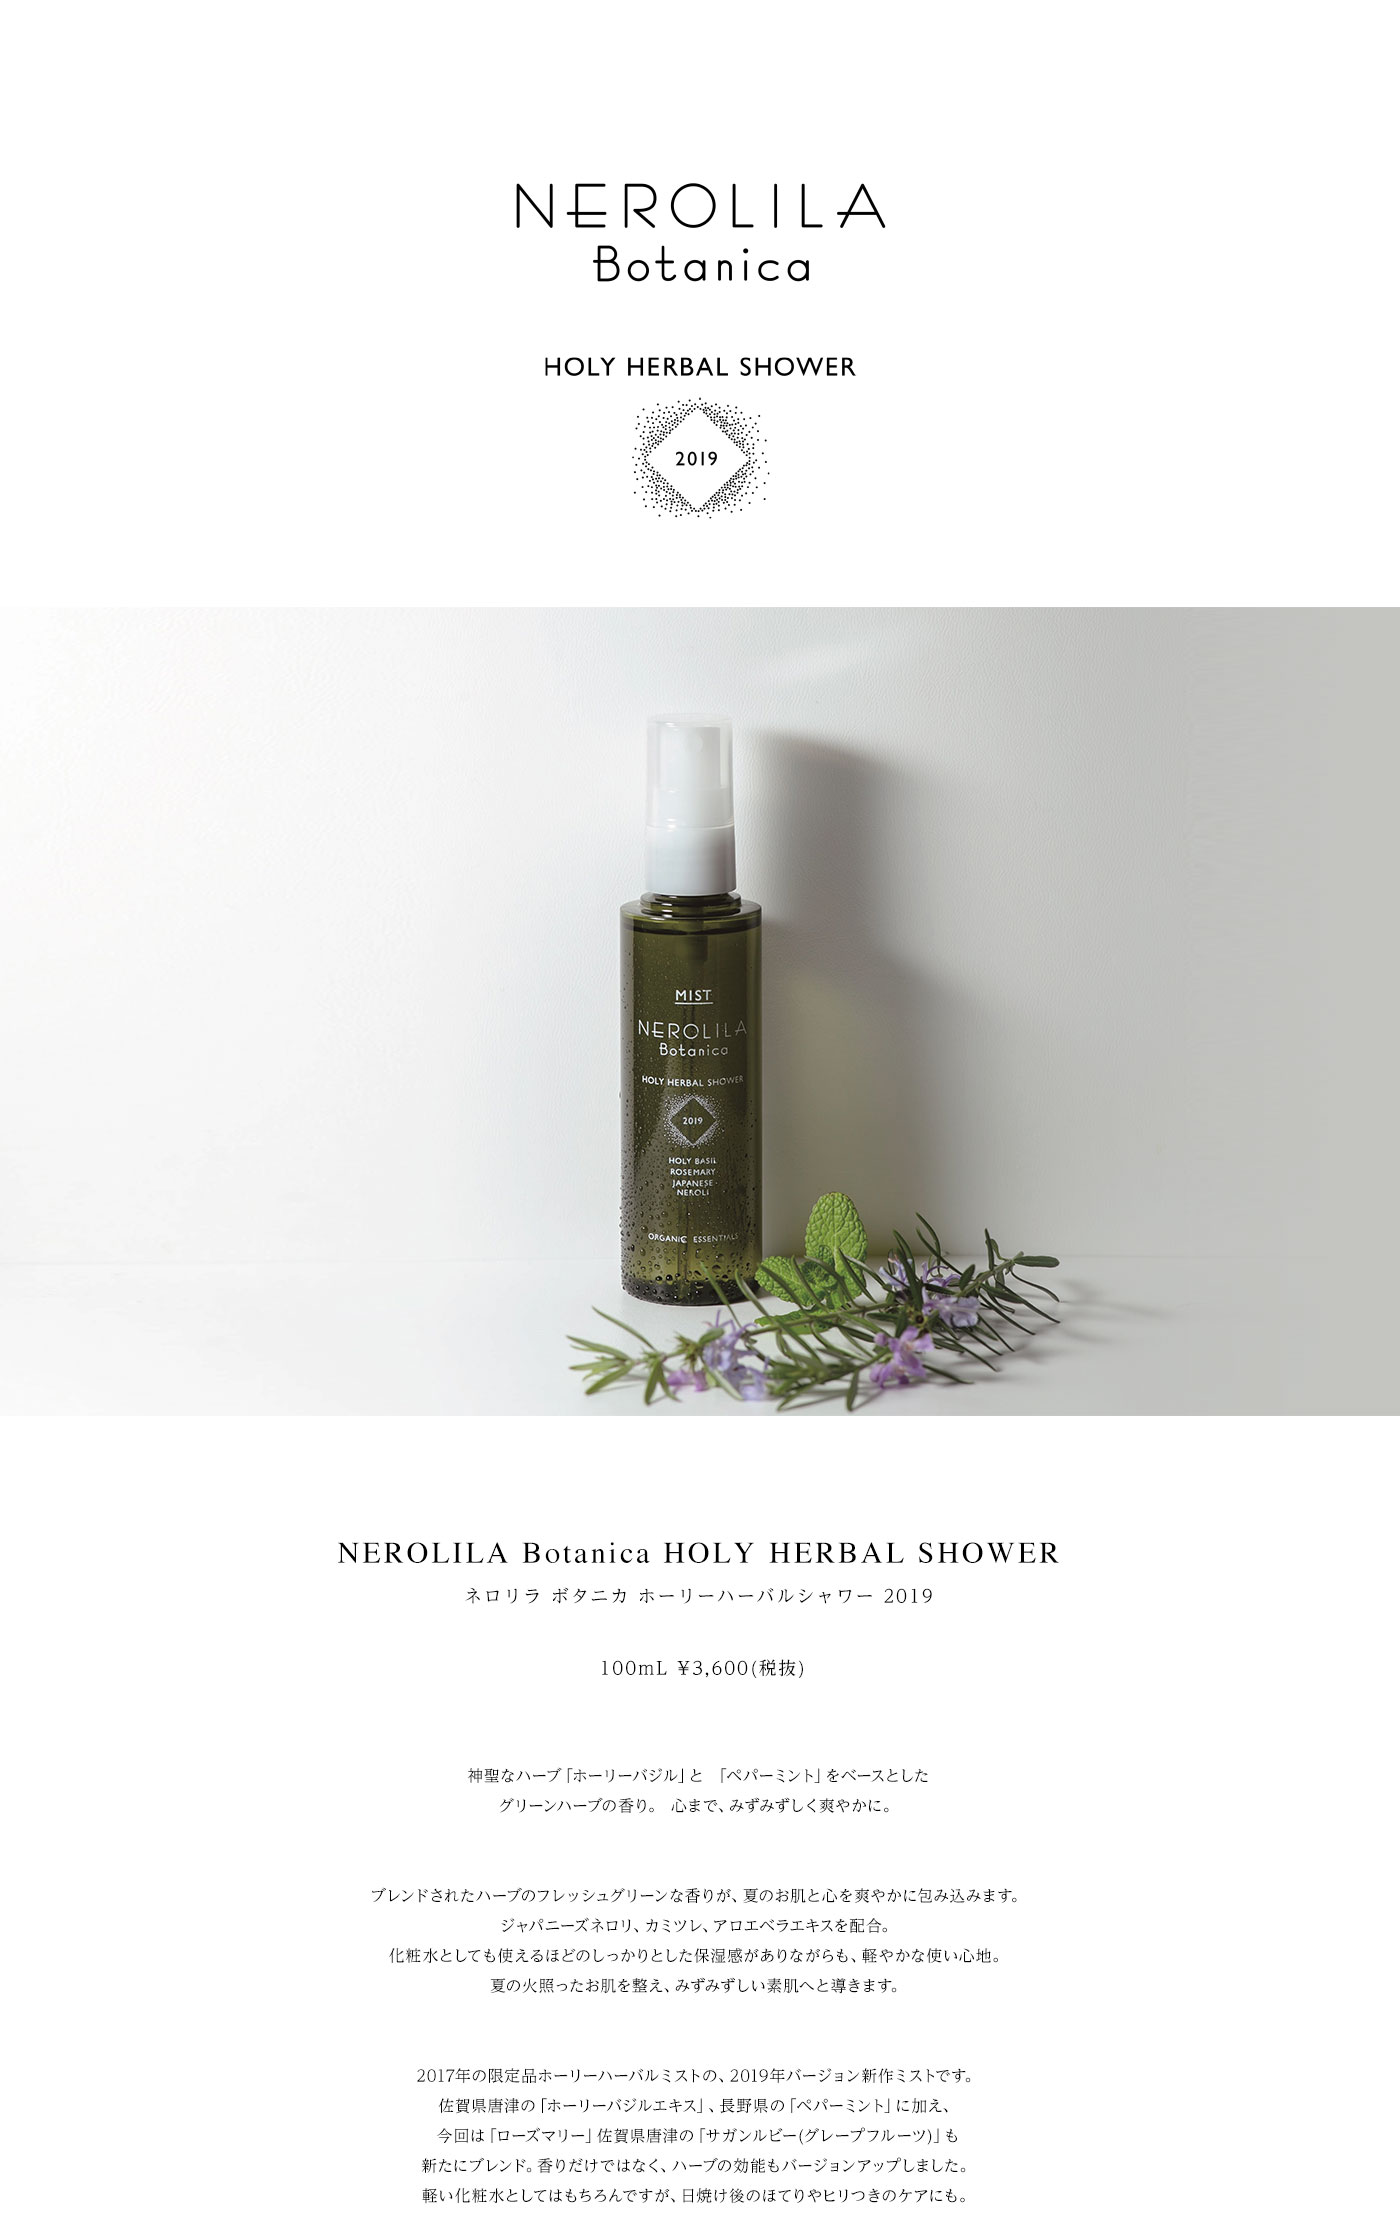 NEROLILA Botanica - HOLY HERBAL SHOWER